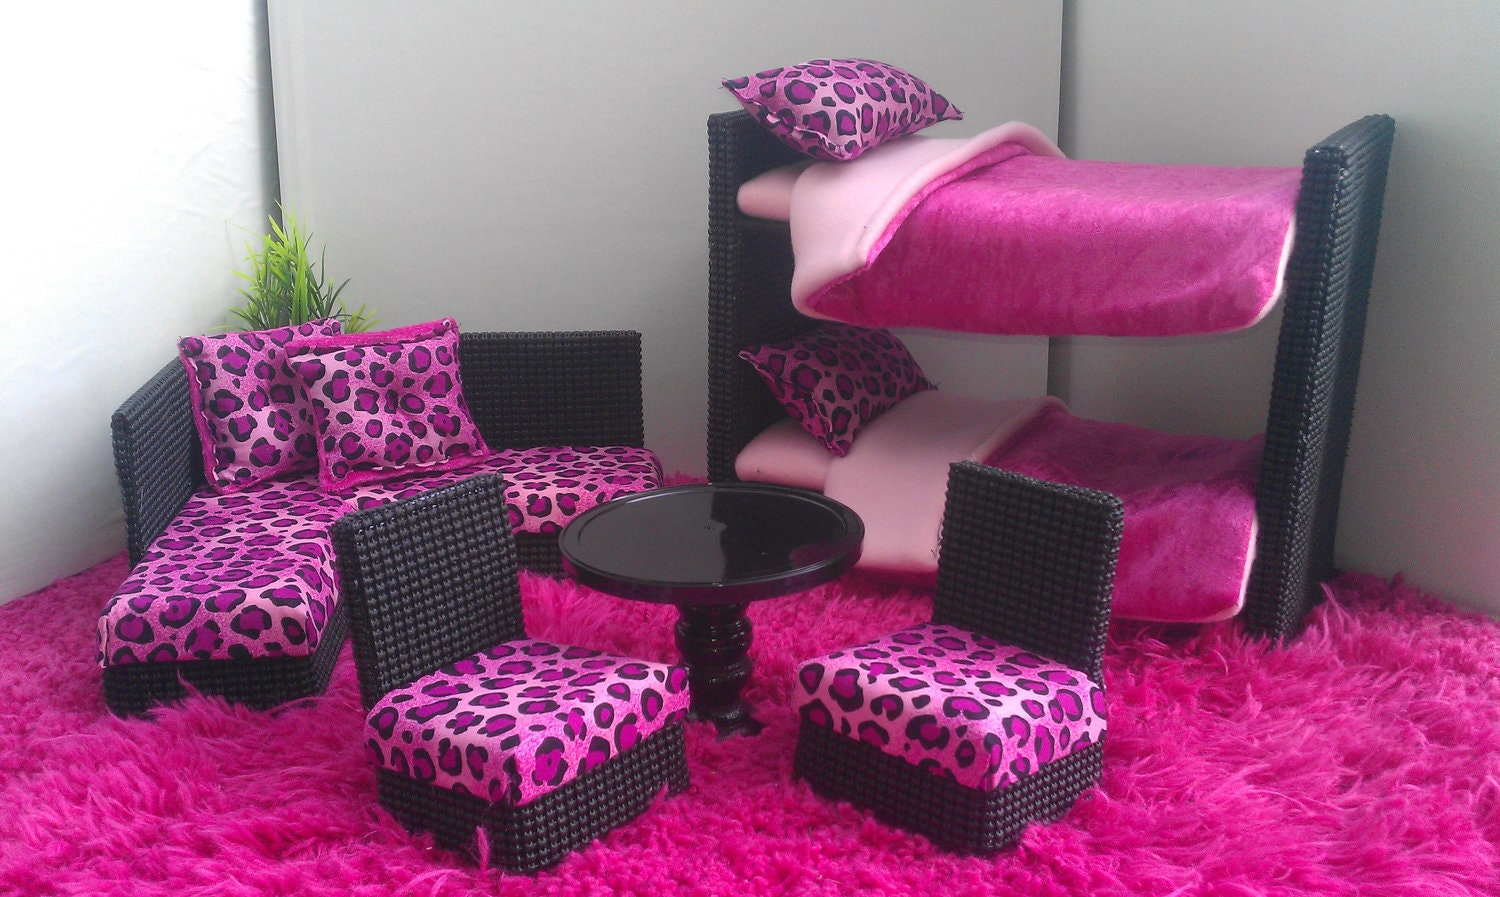 New Bunkbeds for Barbie or Monster High Dolls Complete : ilfullxfull377294150ldkh from www.etsy.com size 1500 x 897 jpeg 343kB